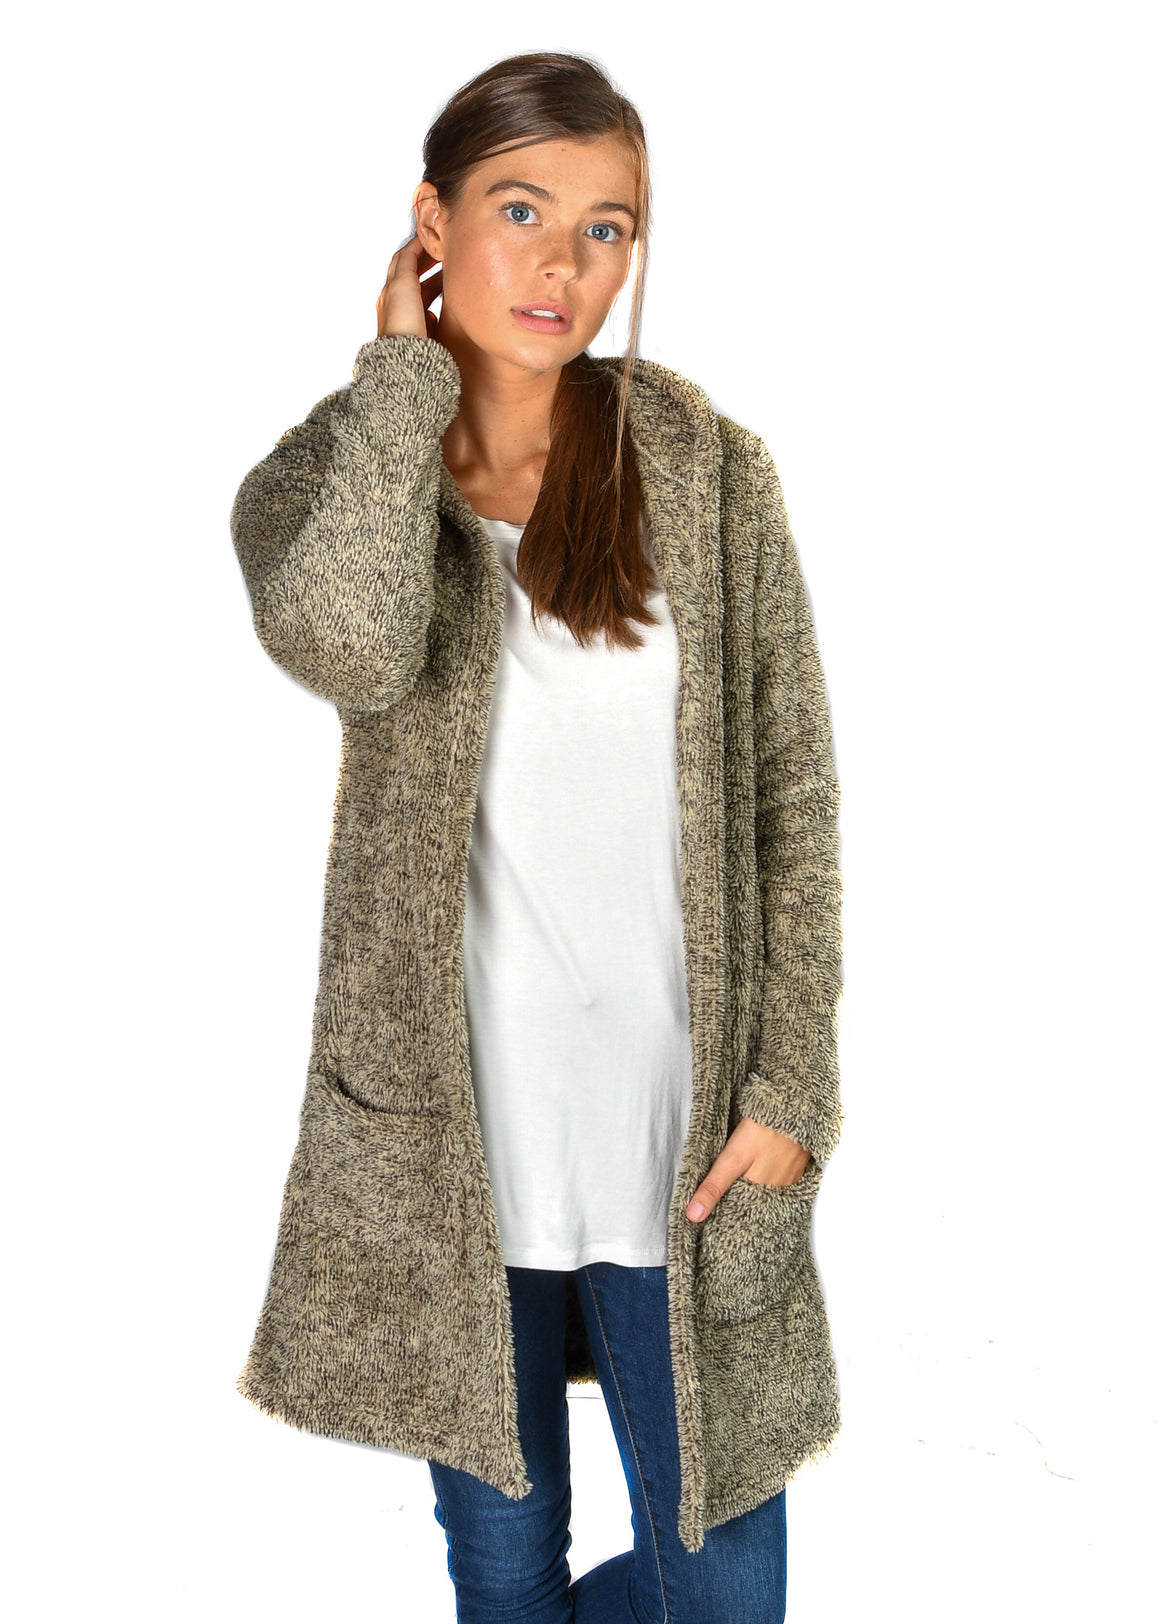 Hooded Oatmeal Raisin Favorite Fleece Cardigan